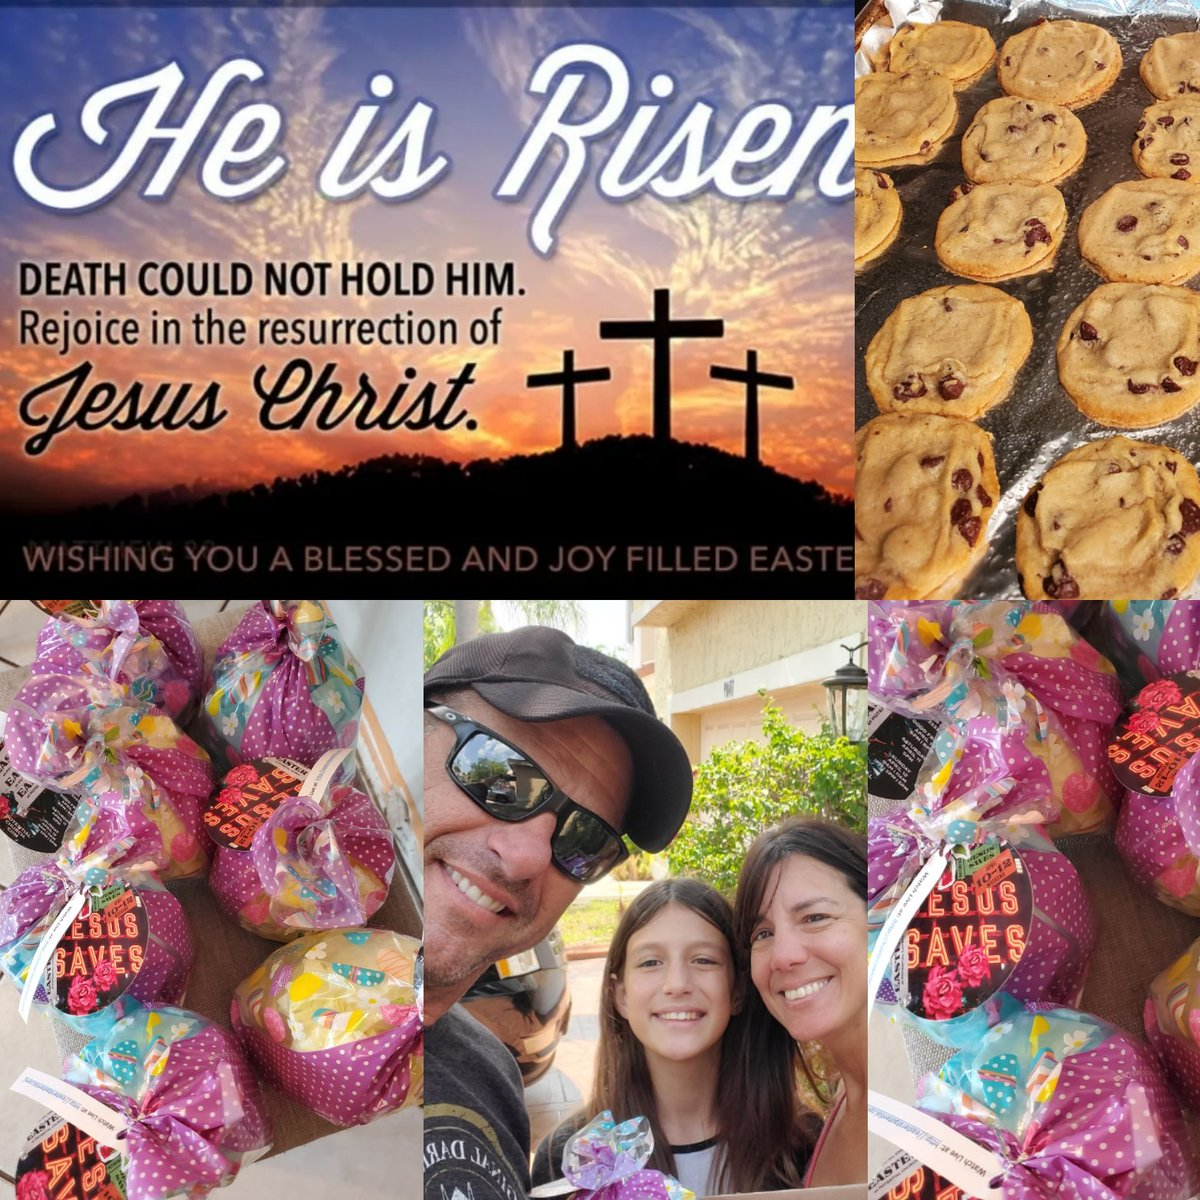 Shifting from WORRY to WORSHIP! Baked cookies for my neighbors w/ link to EasterLive @potentialchurch He's the peace that passes all understanding, the giver of every good&perfect gift, we can trust Him & he carries the weight of our worries & knows our today & tomorrow John3:17